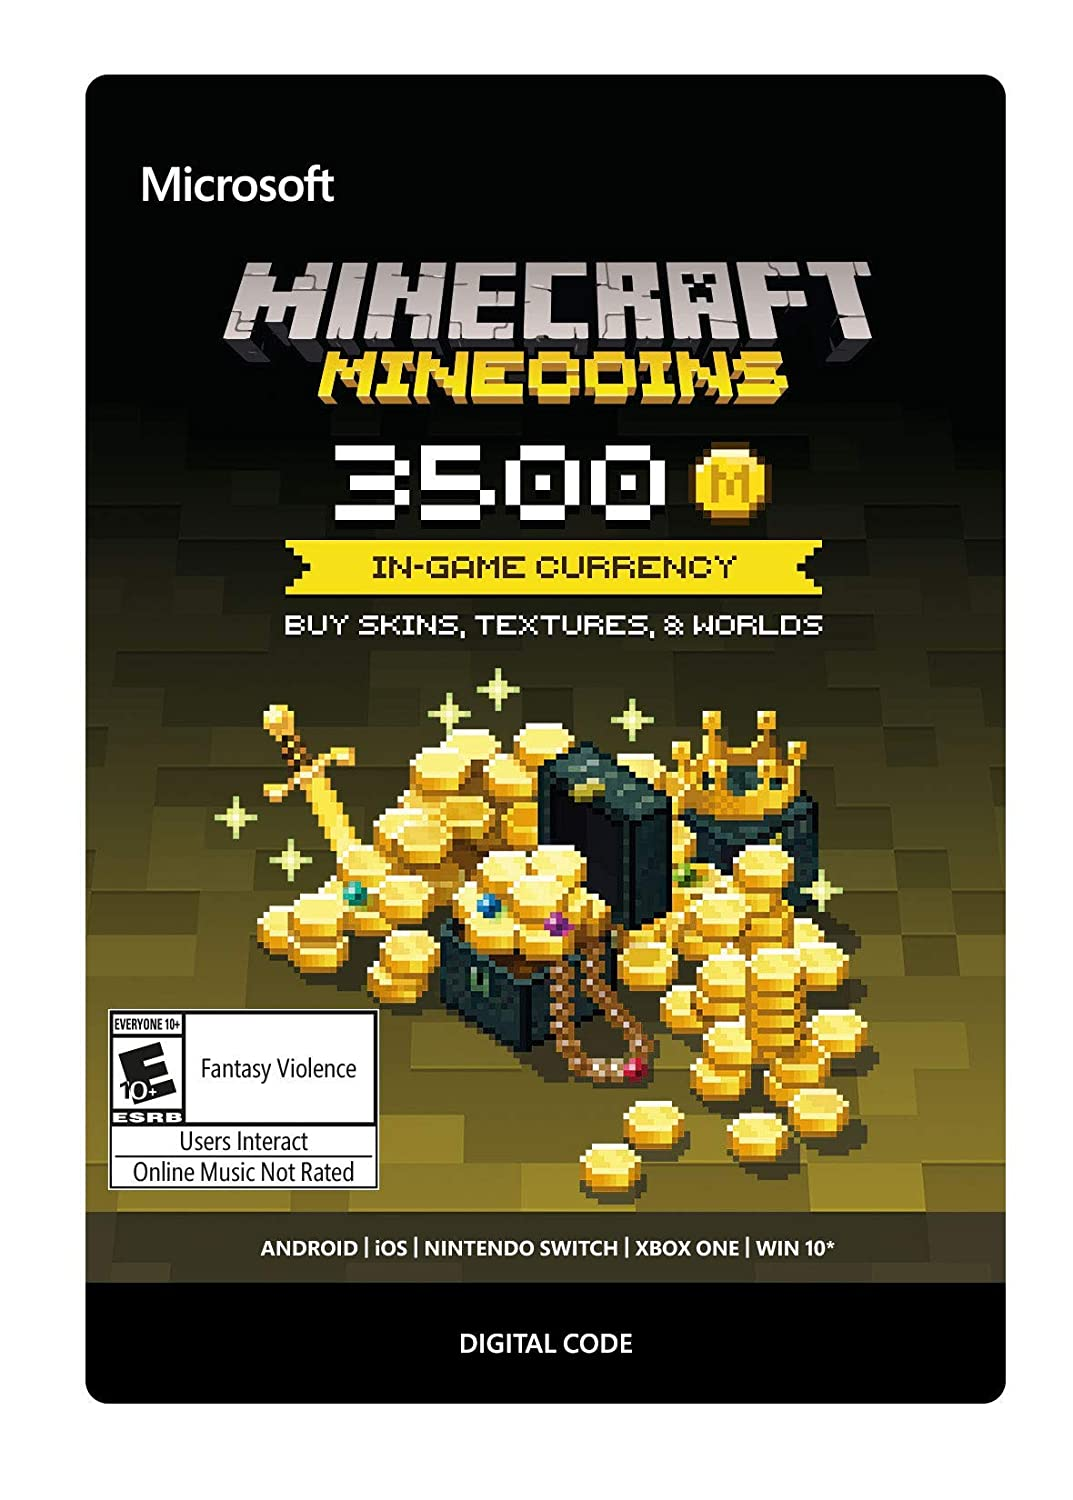 minecraft pocket edition roblox xbox 360 video game cape Amazon Com Minecraft Minecoins Pack 1720 Coins Xbox One Digital Code Video Games